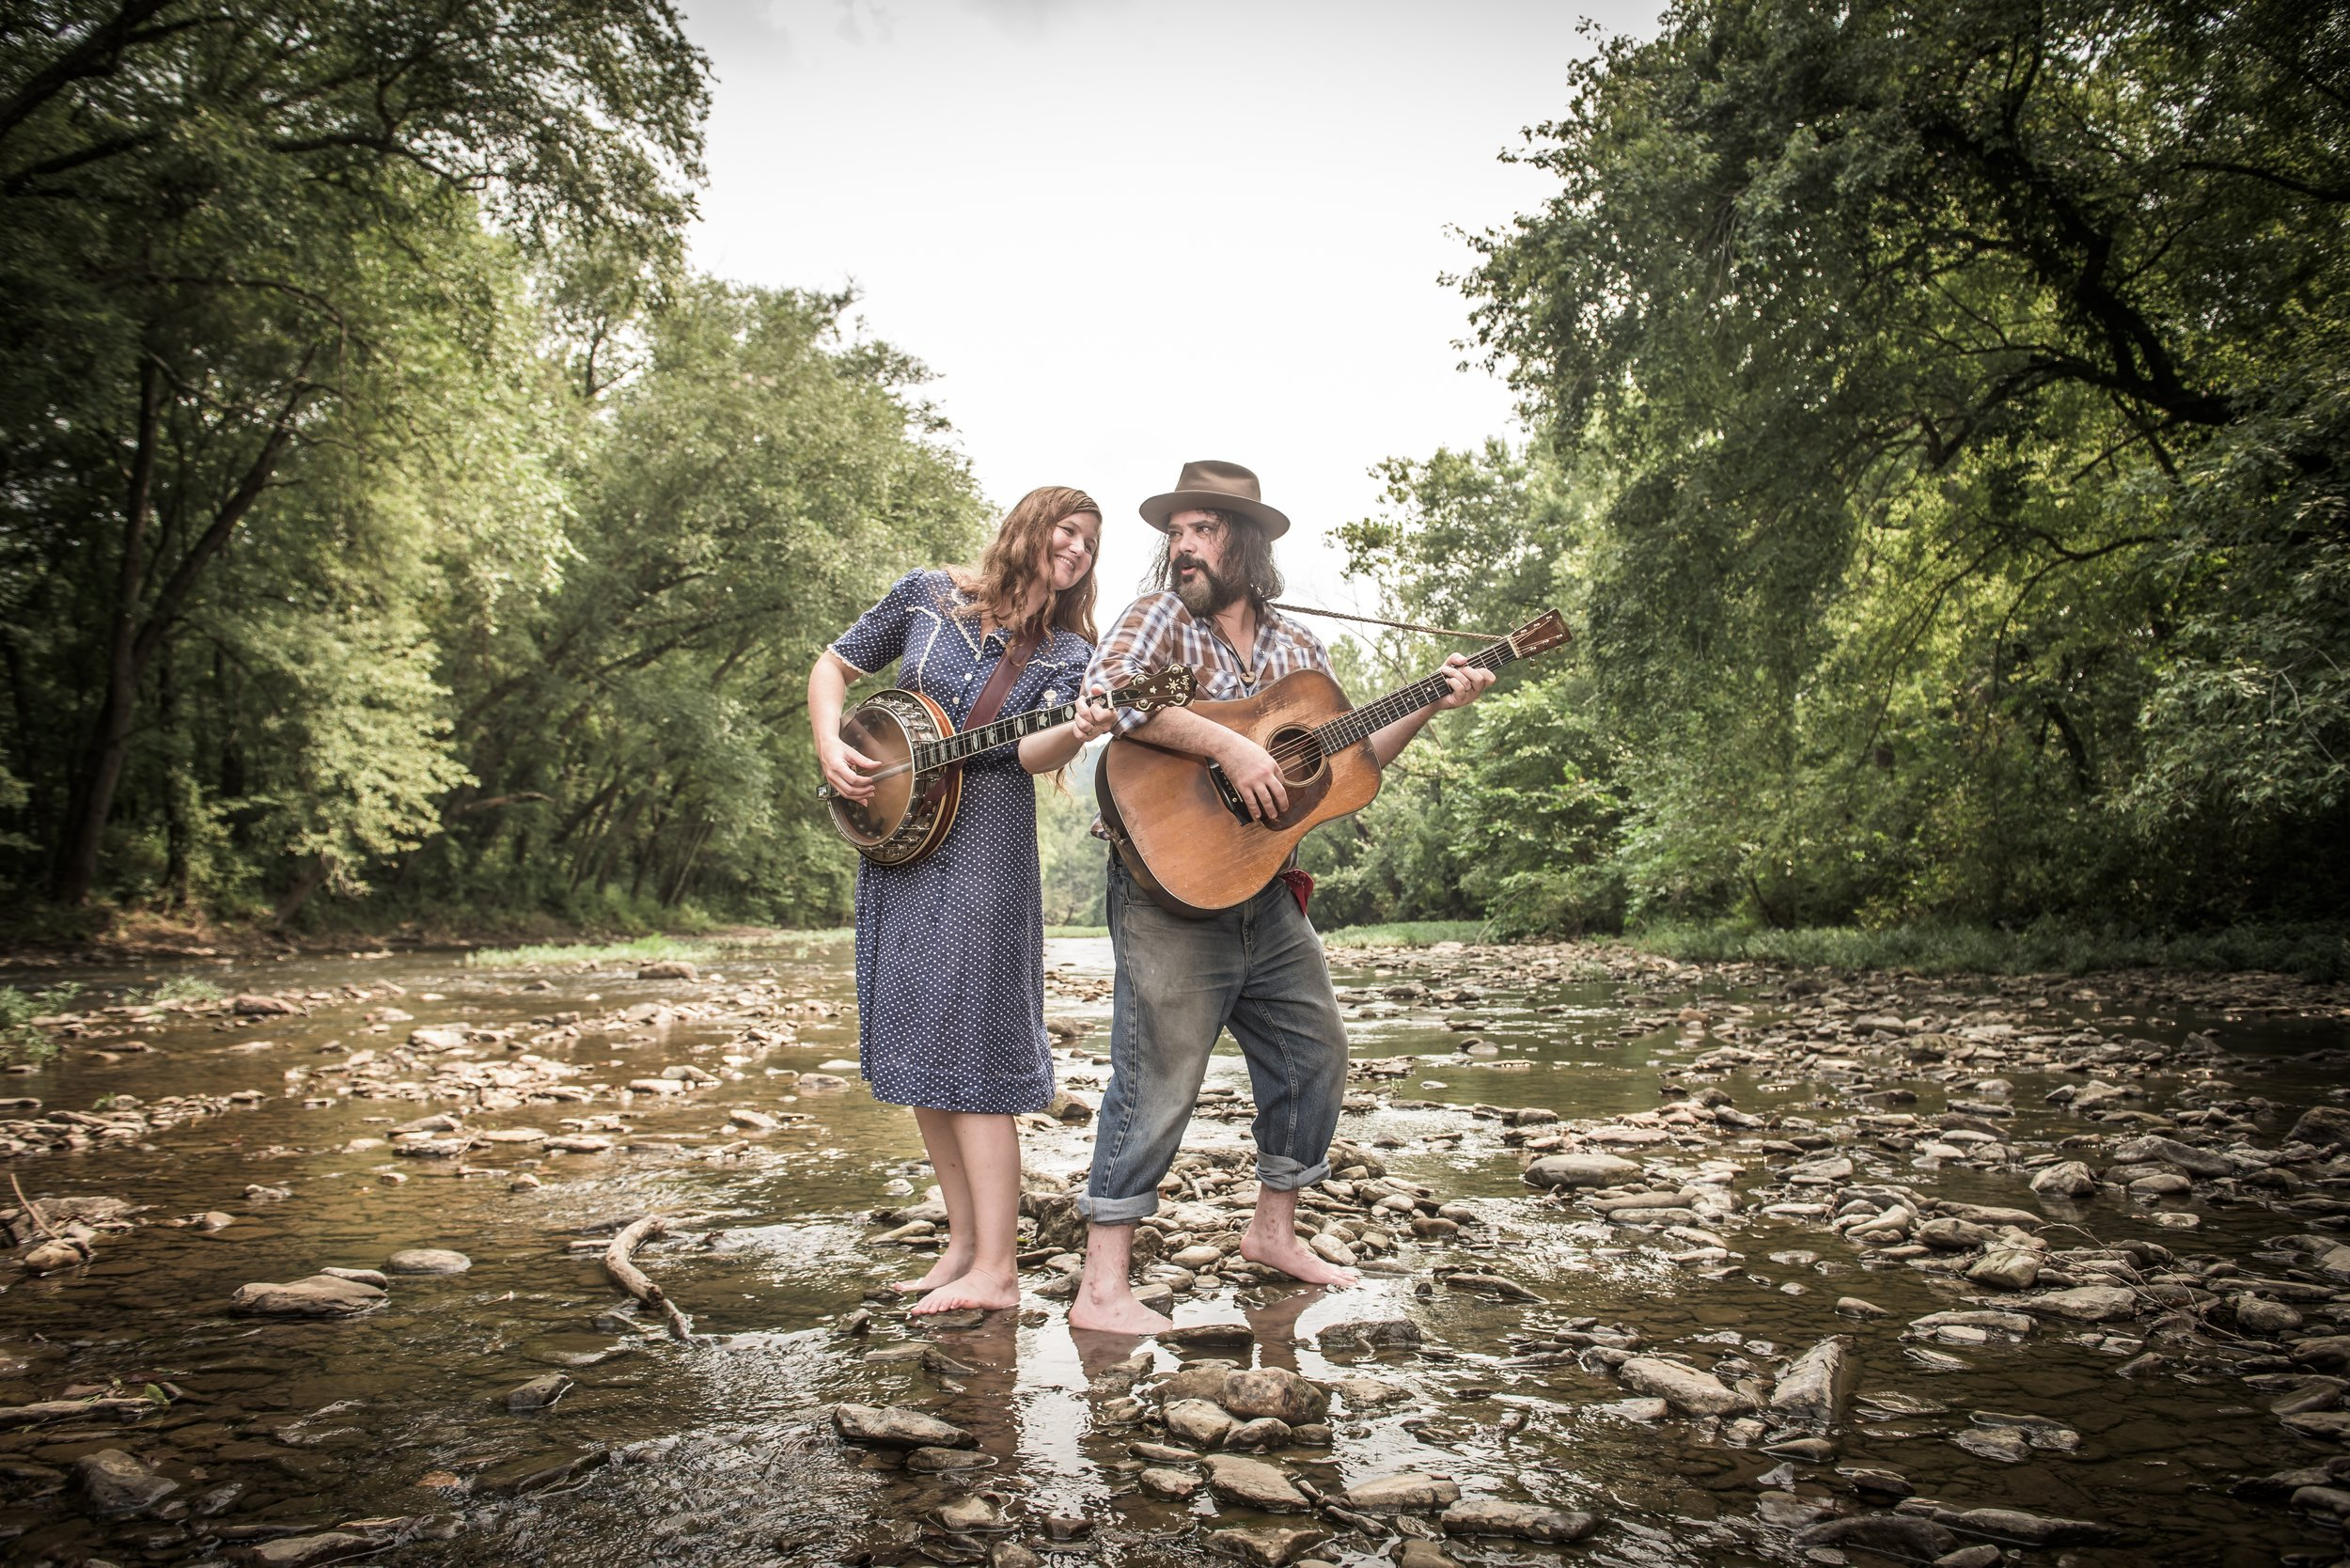 "The Creek Rocks - May 22nd & 29th, Every Wednesday evening in June.The Creek Rocks are a folk group from the Ozarks led by banjoist Cindy Woolf and guitarist Mark Bilyeu. These longtime musical collaborators worked together on Cindy's three CDs of original songs starting in 2005, they married in 2013, then established The Creek Rocks in 2015. Mark is a founding member of Ozarks family band Big Smith, with whom he toured and recorded for sixteen years. Their debut release, ""Wolf Hunter,"" is a collection of sixteen folk songs from the Ozarks, drawn from the collections of folklorists Max Hunter of Springfield, Missouri, Mark's hometown; and John Quincy Wolf of Batesville, Arkansas, where Cindy grew up. Joining them on the album are bassist Jason Chapman of the Chapmans bluegrass band and percussionist Jay Williamson, also of Big Smith, who currently serves as the band's go-to live percussionist. Cindy and Mark often perform as a duo, but are also buttressed by a host of musician friends when a full band seems decorous for the situation."